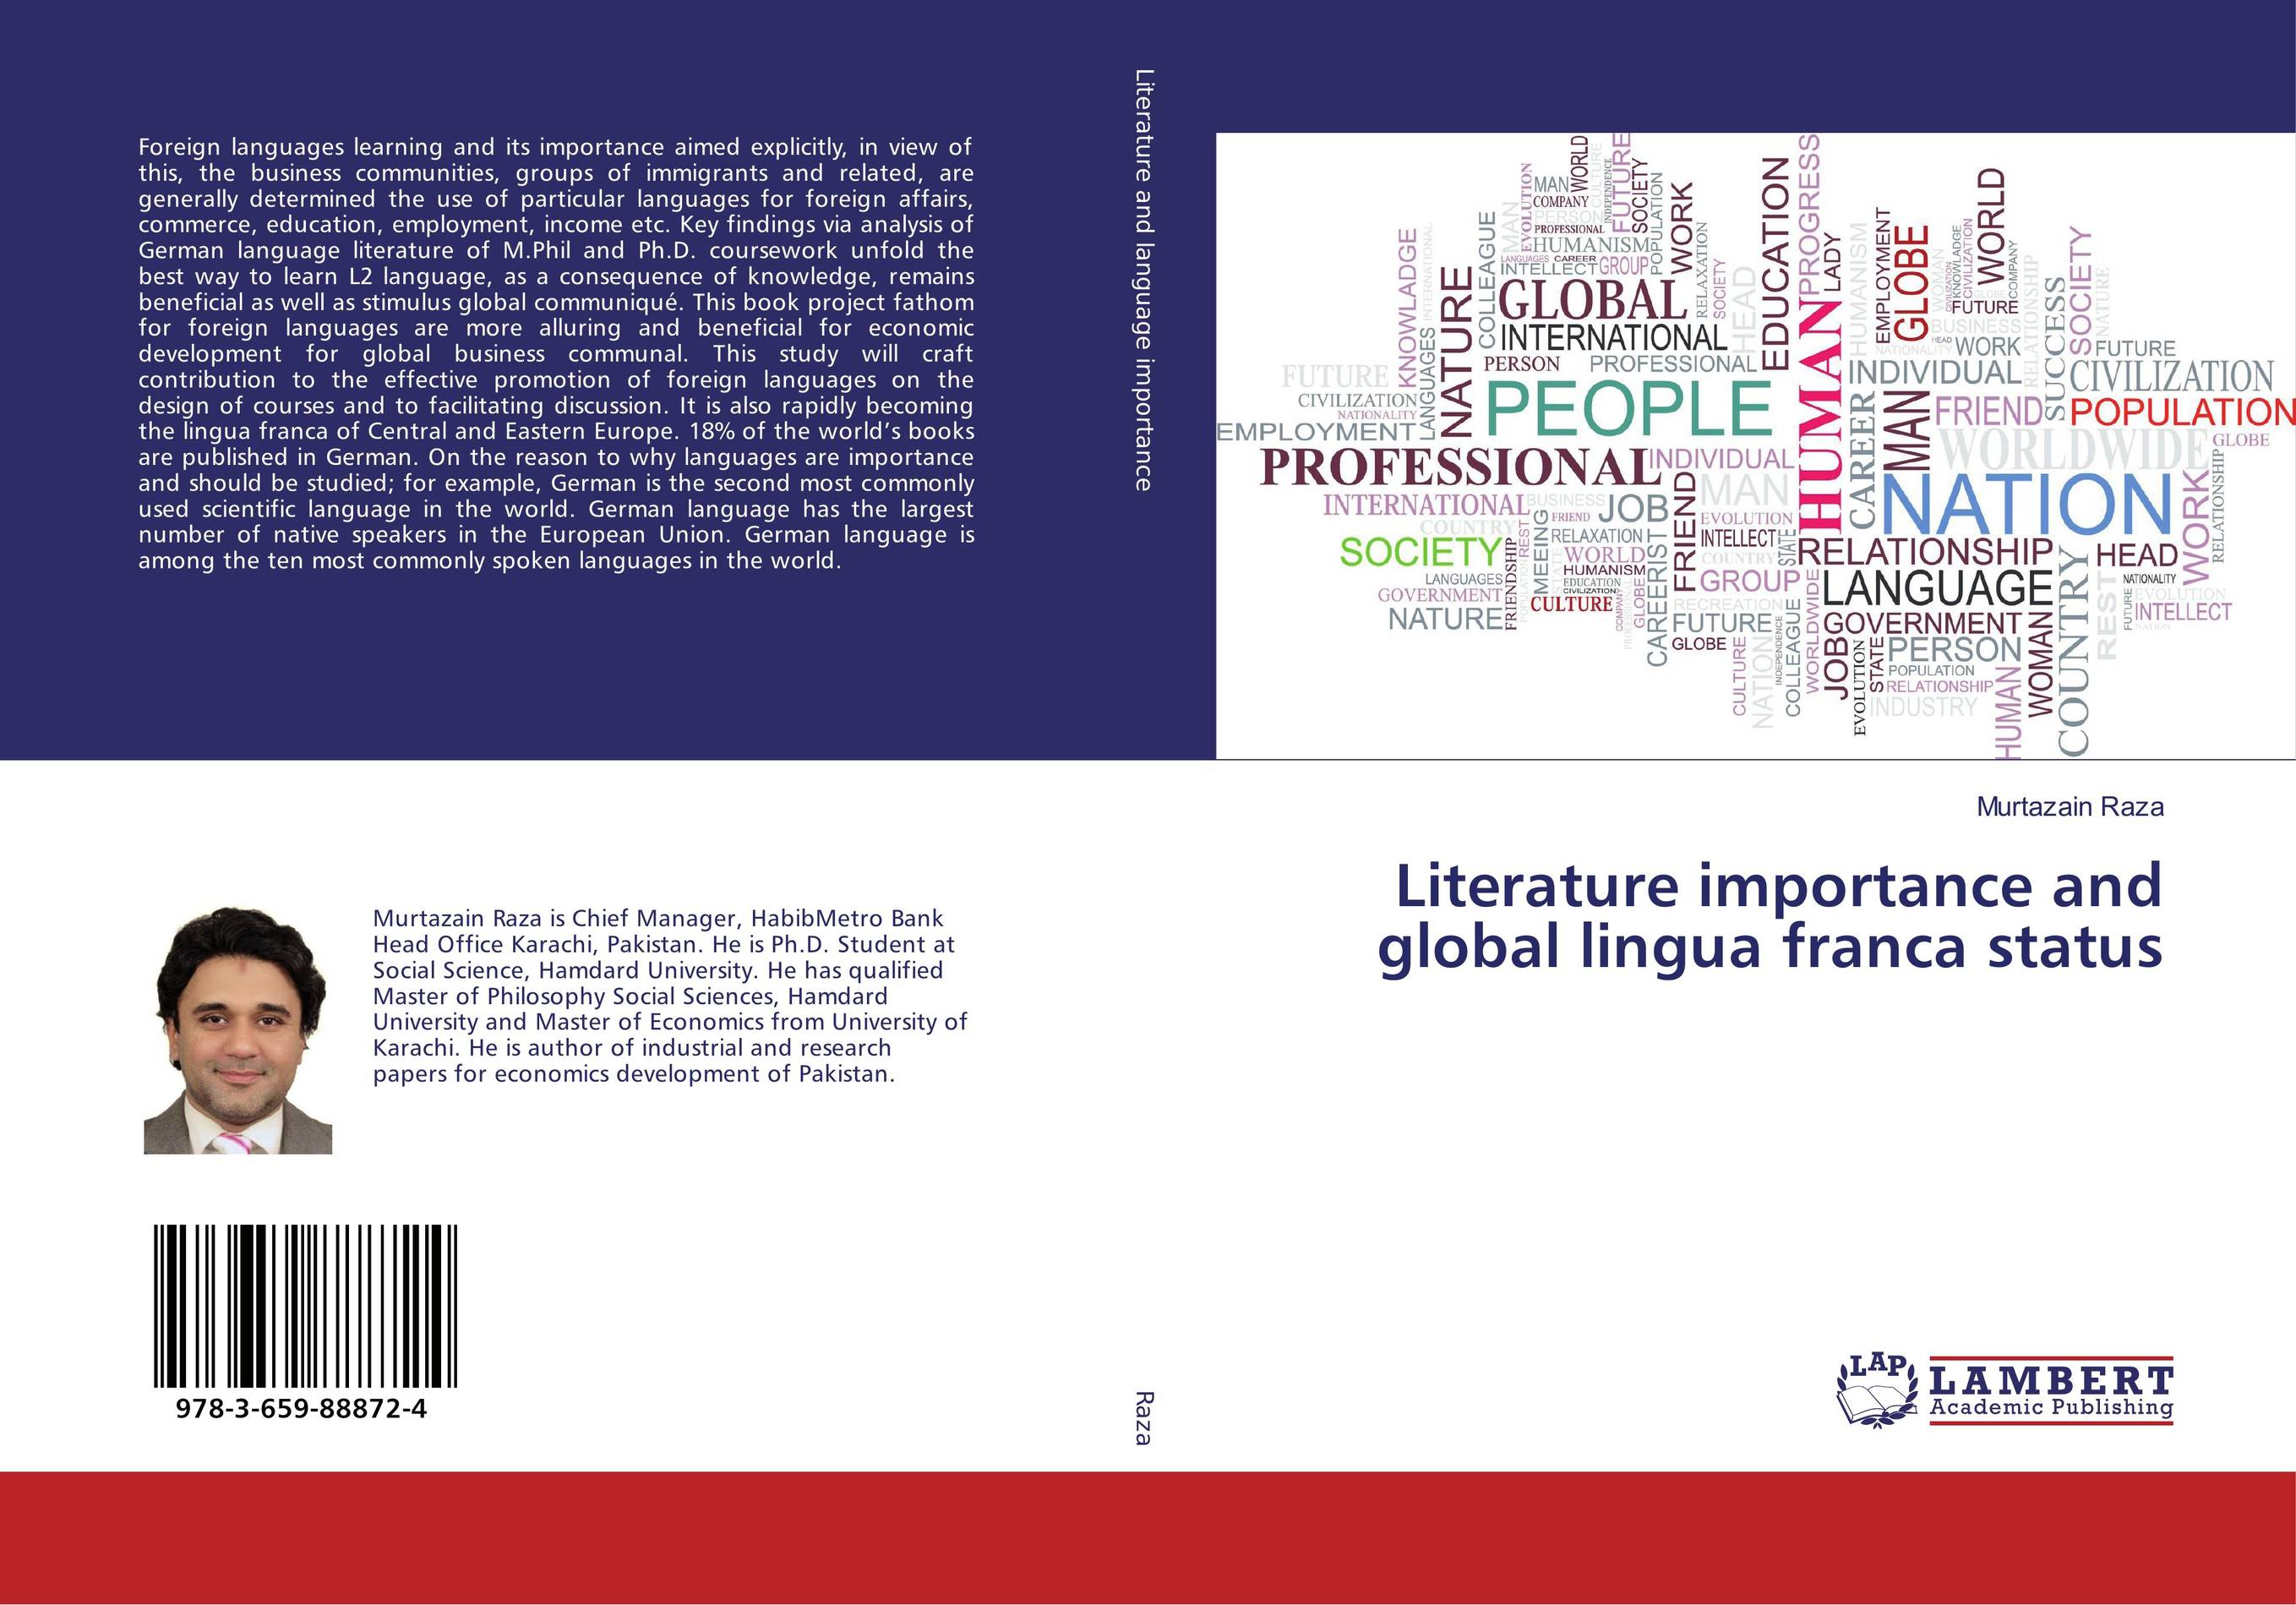 Literature importance and global lingua franca status introduction to the languages of the world